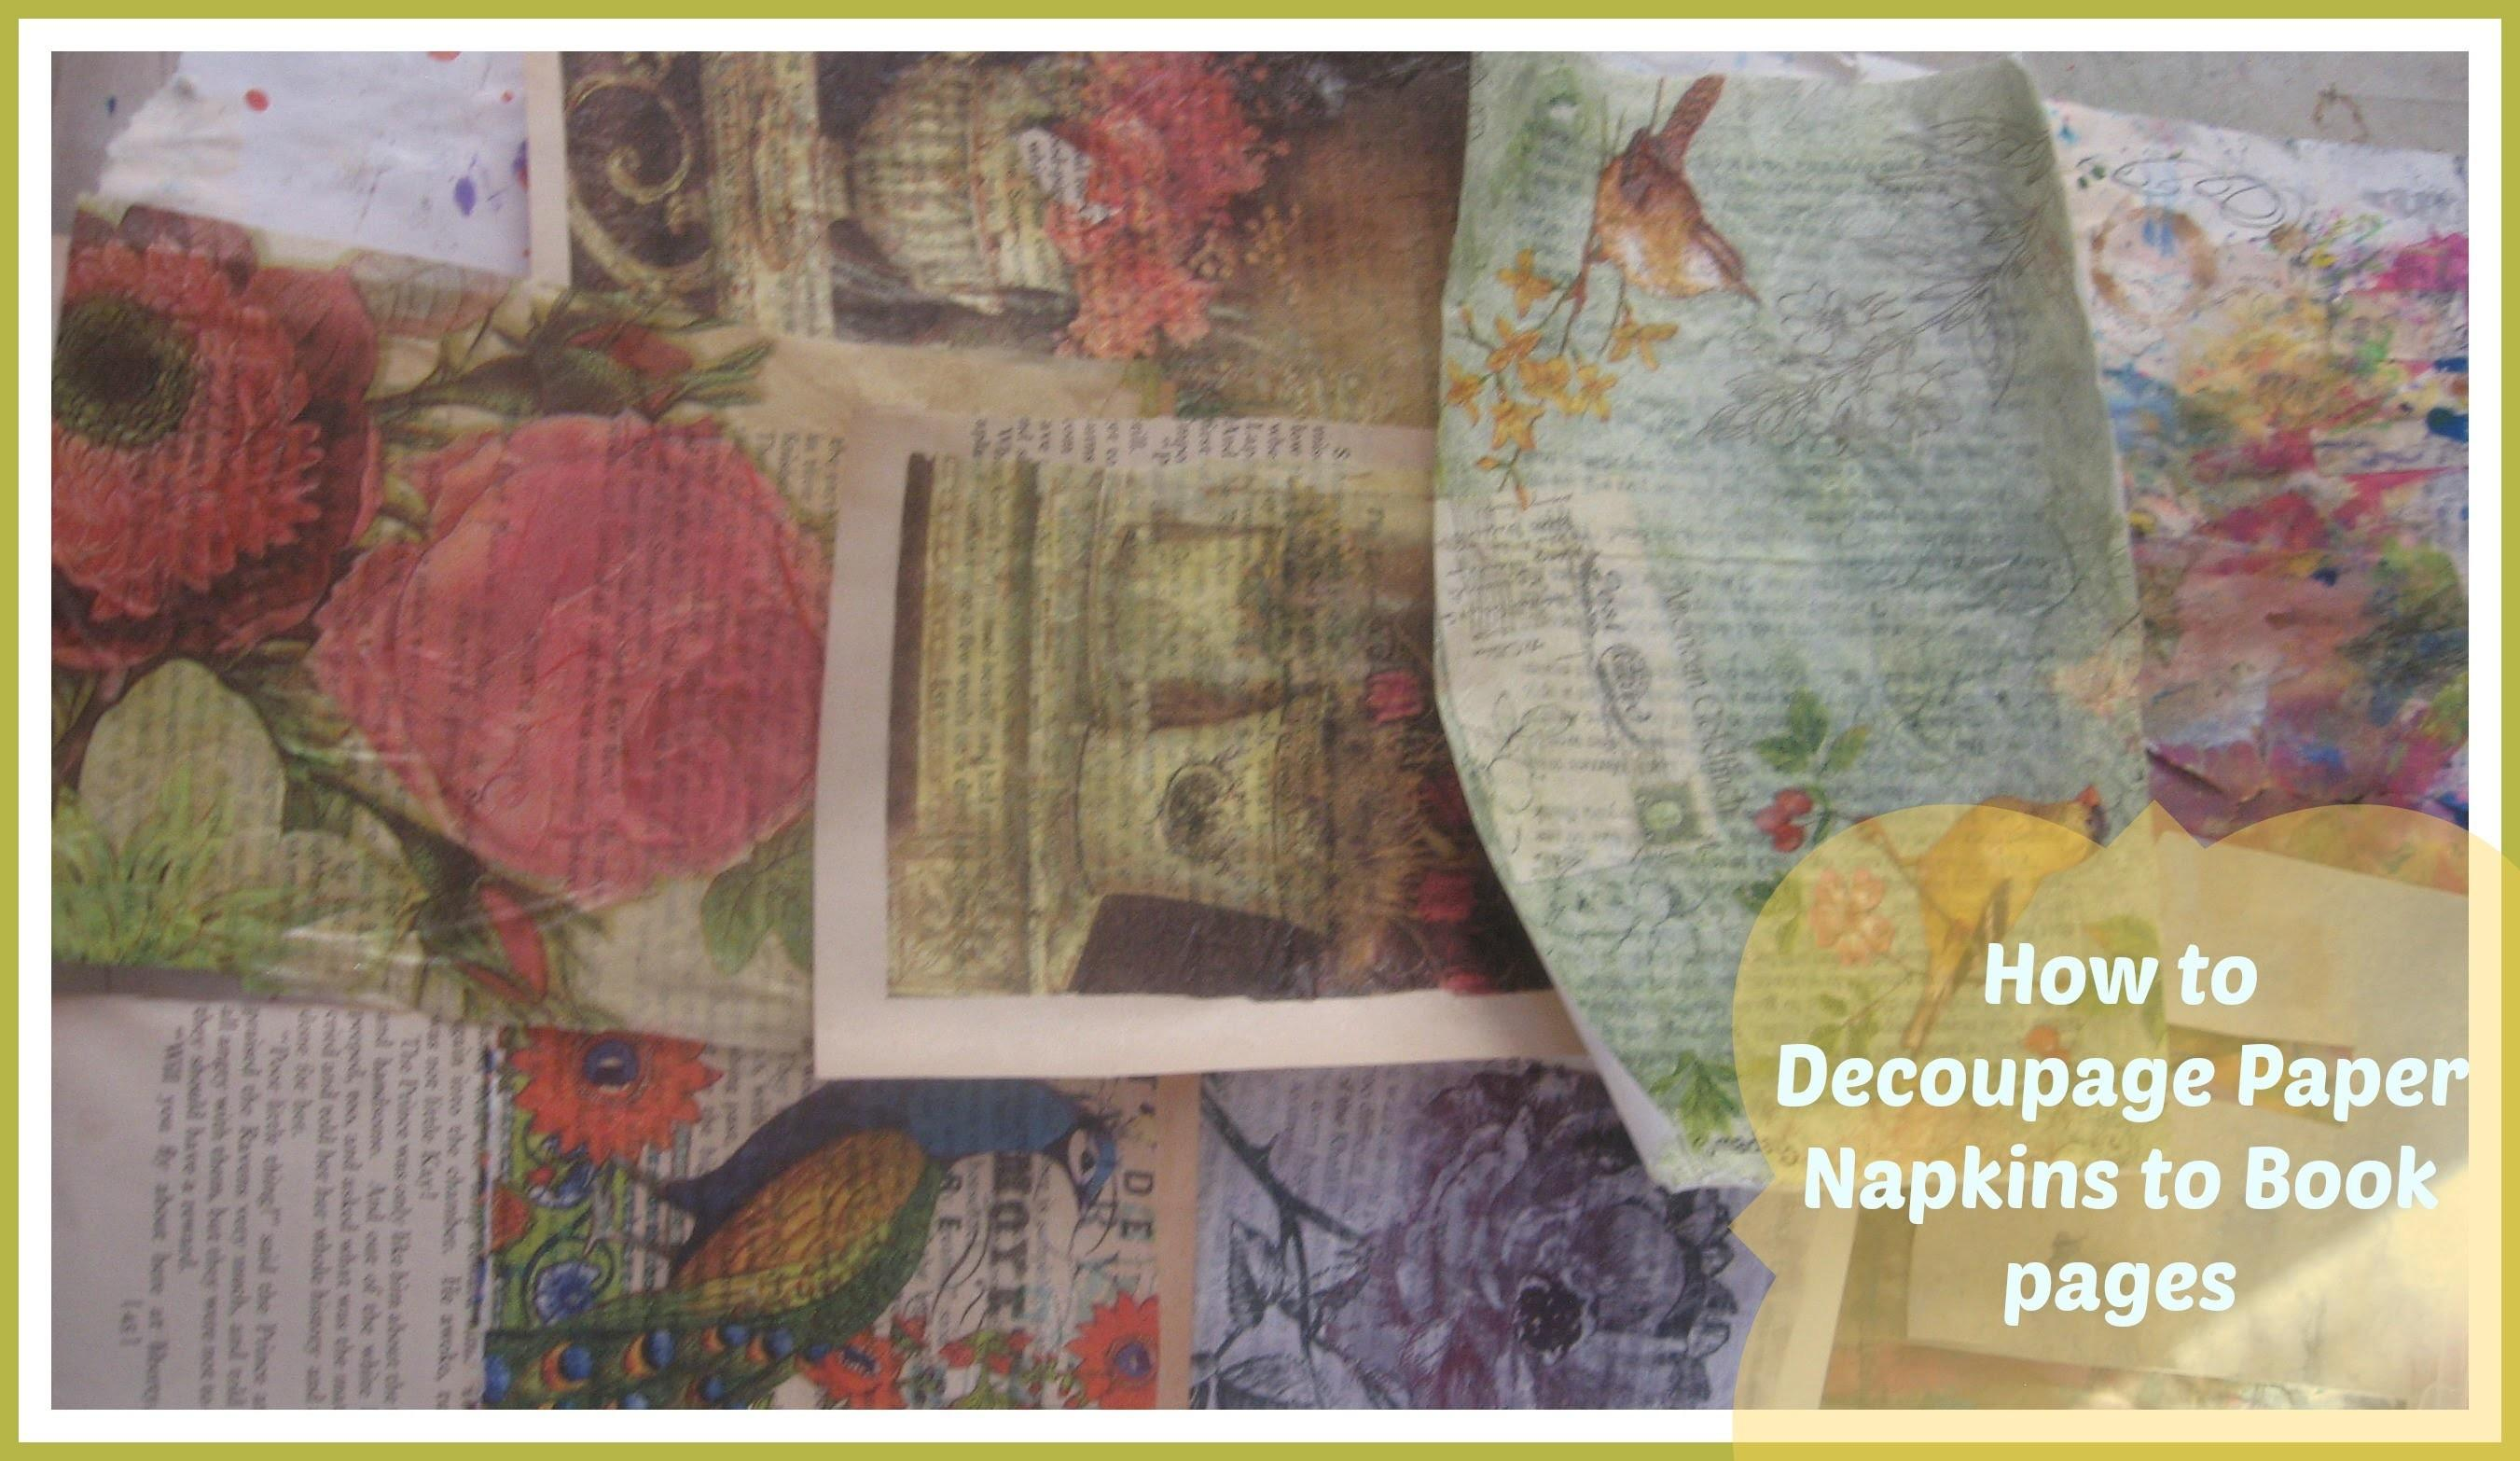 Decoupage Paper Napkins Book Pages Mixed Media